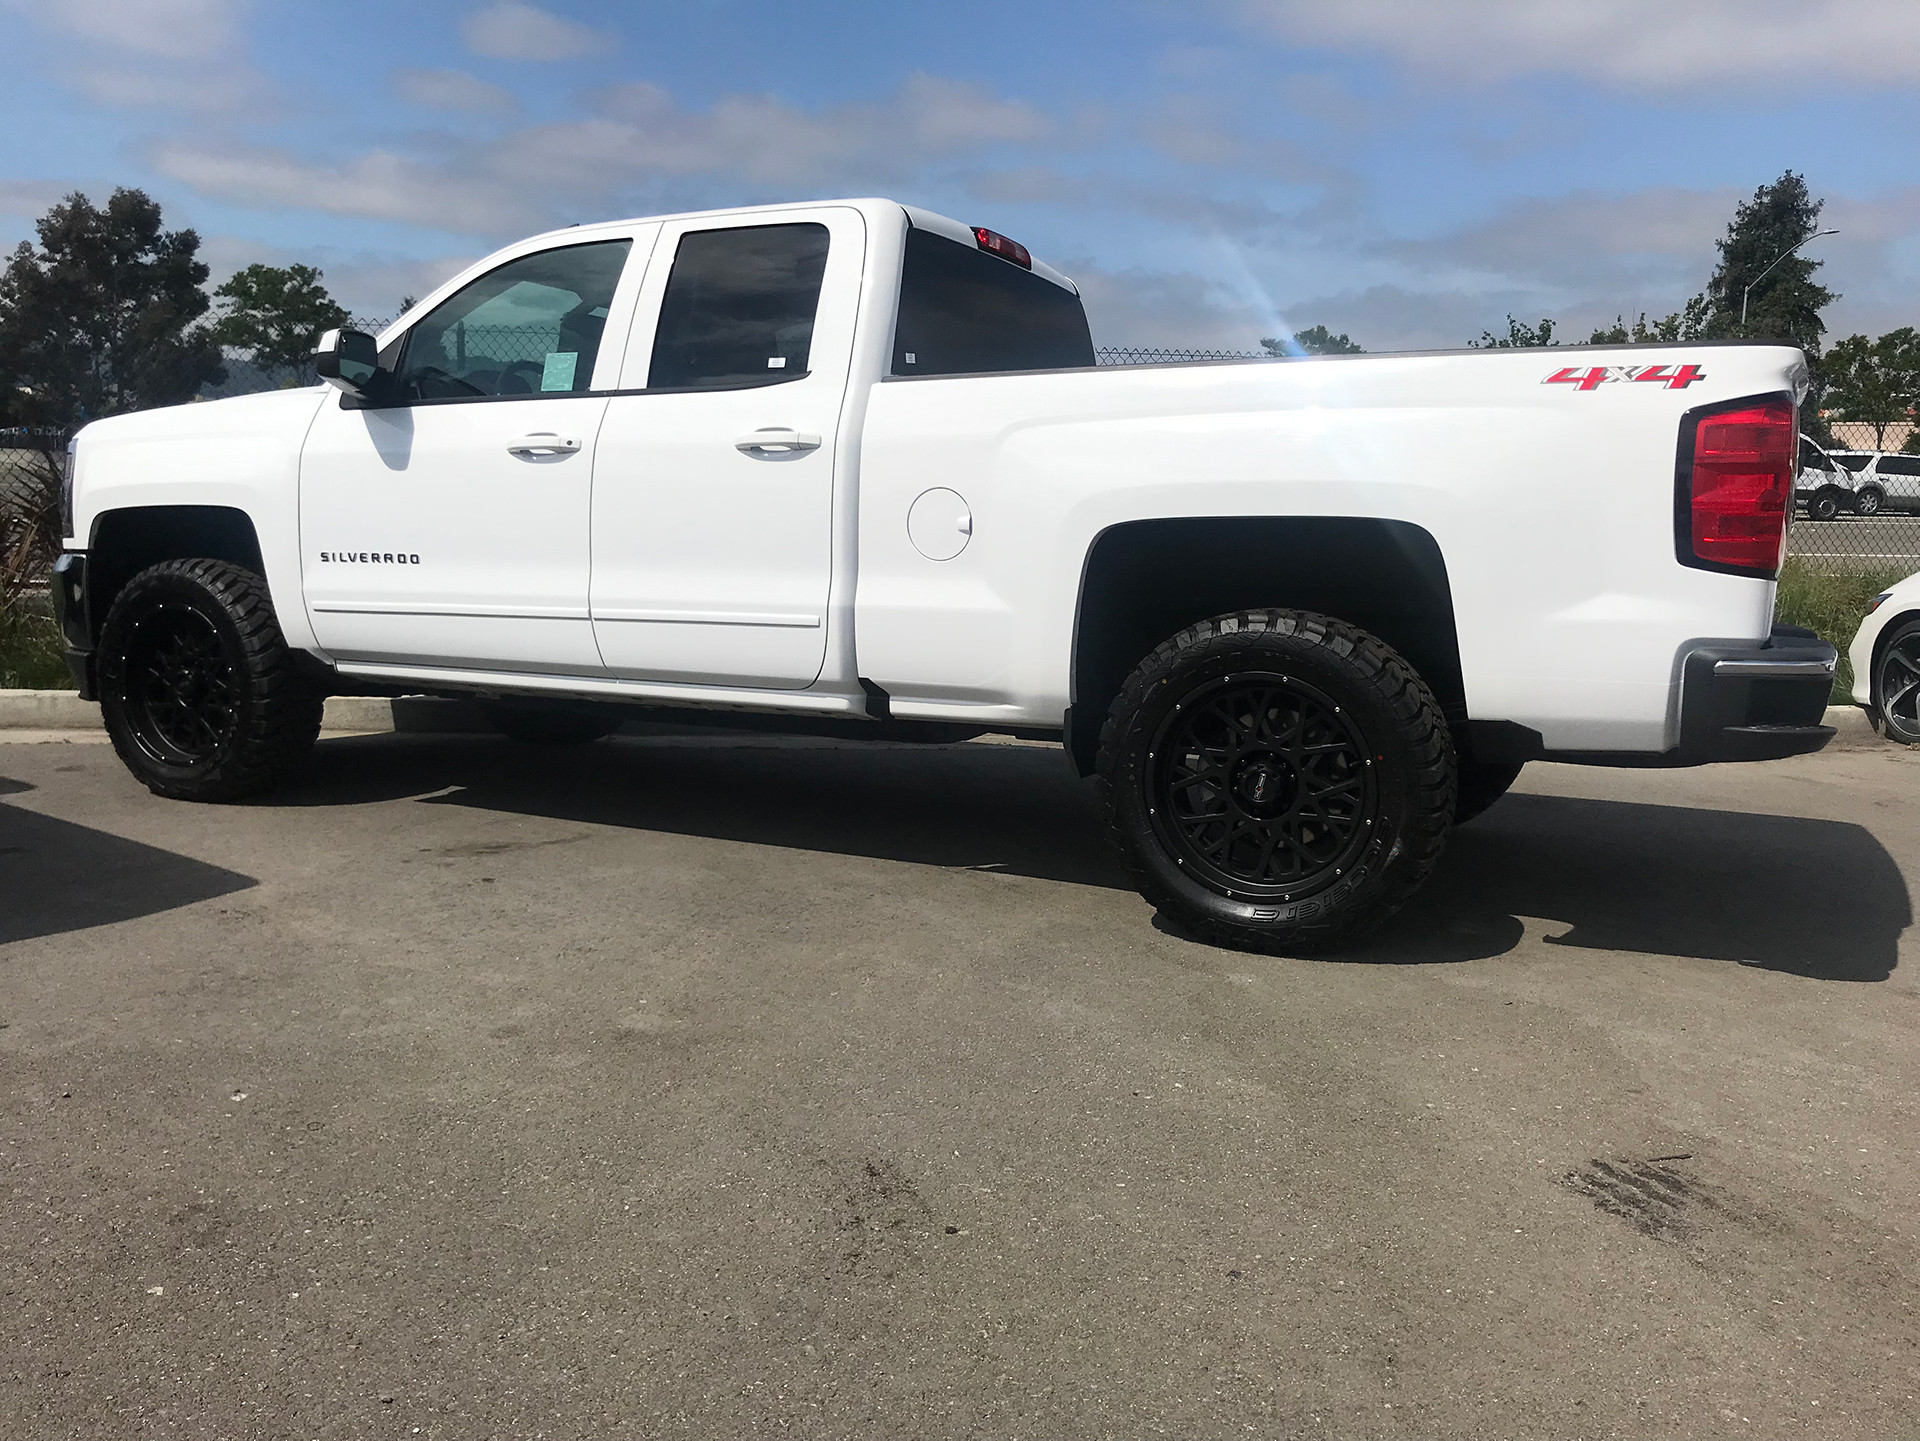 "Chevrolet Silverado 20"" Vision 412 Rocker wrapped in 3312.50R20 off-road tires"